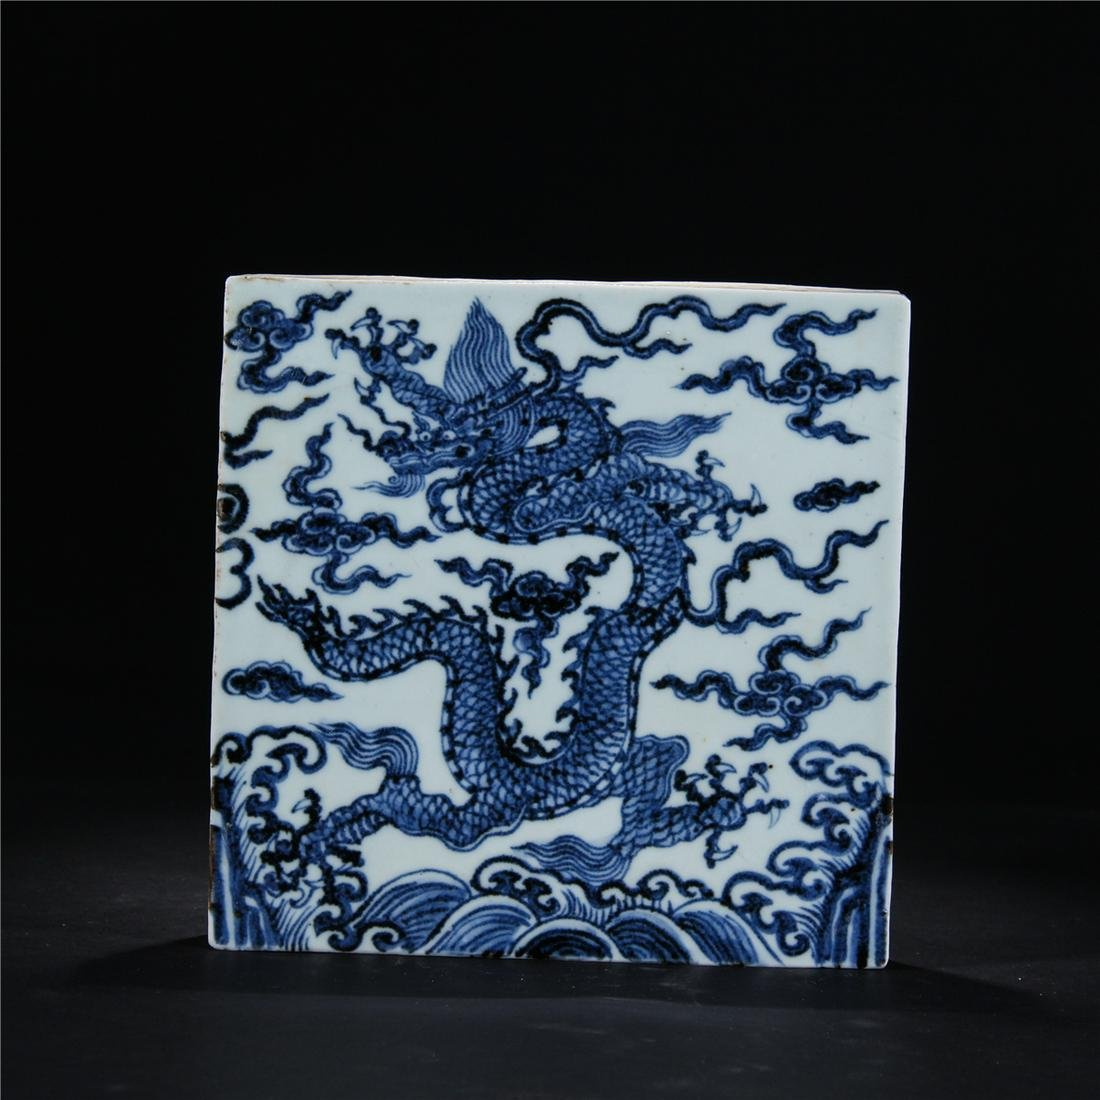 CHINESE BLUE AND WHITE PORCELAIN PAINT DRAGON MOSAIC